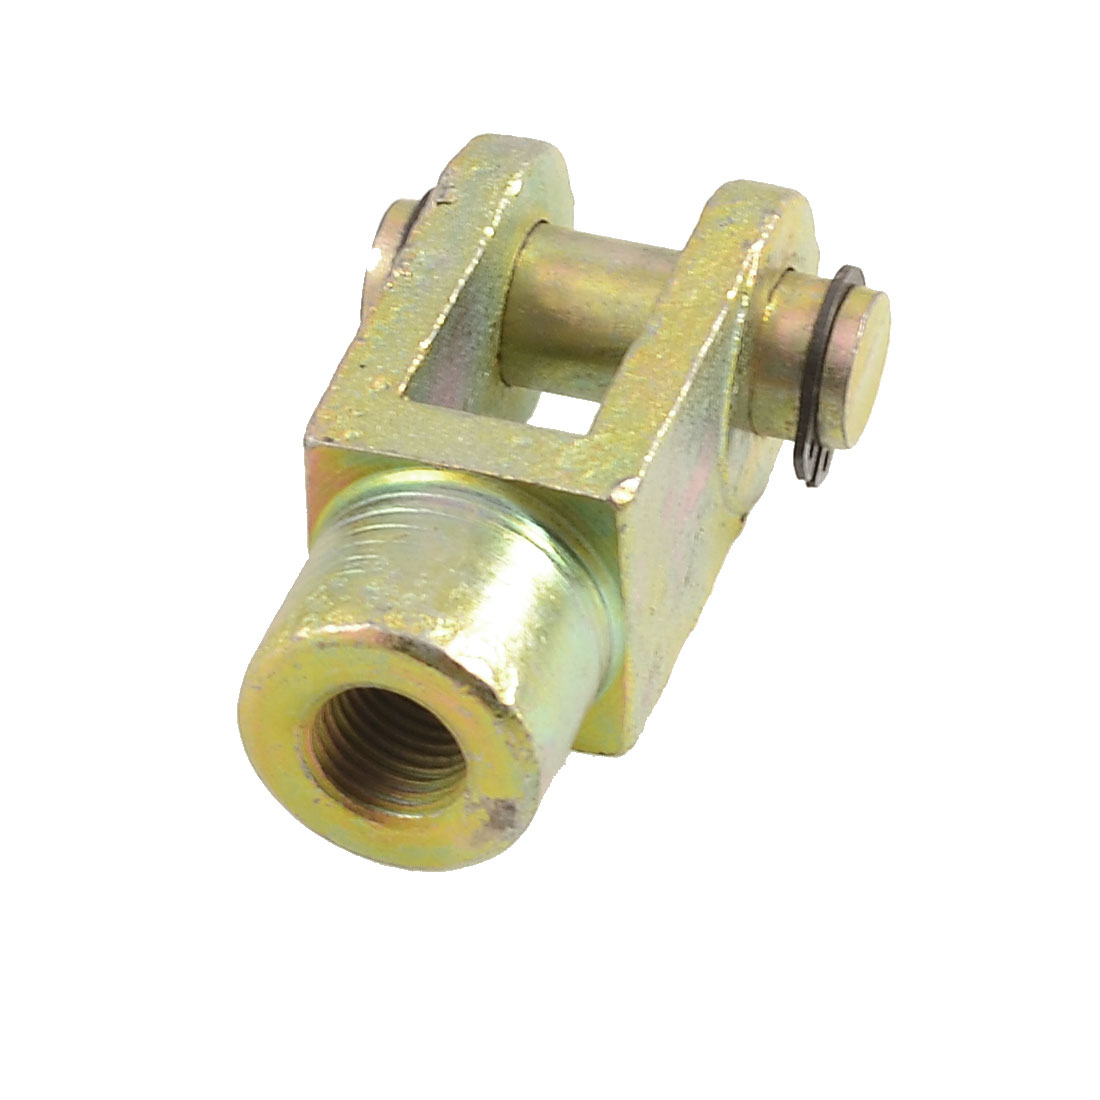 Y Joint M12 Female to Male Thread Pneumatic Cylinder Piston Clevis